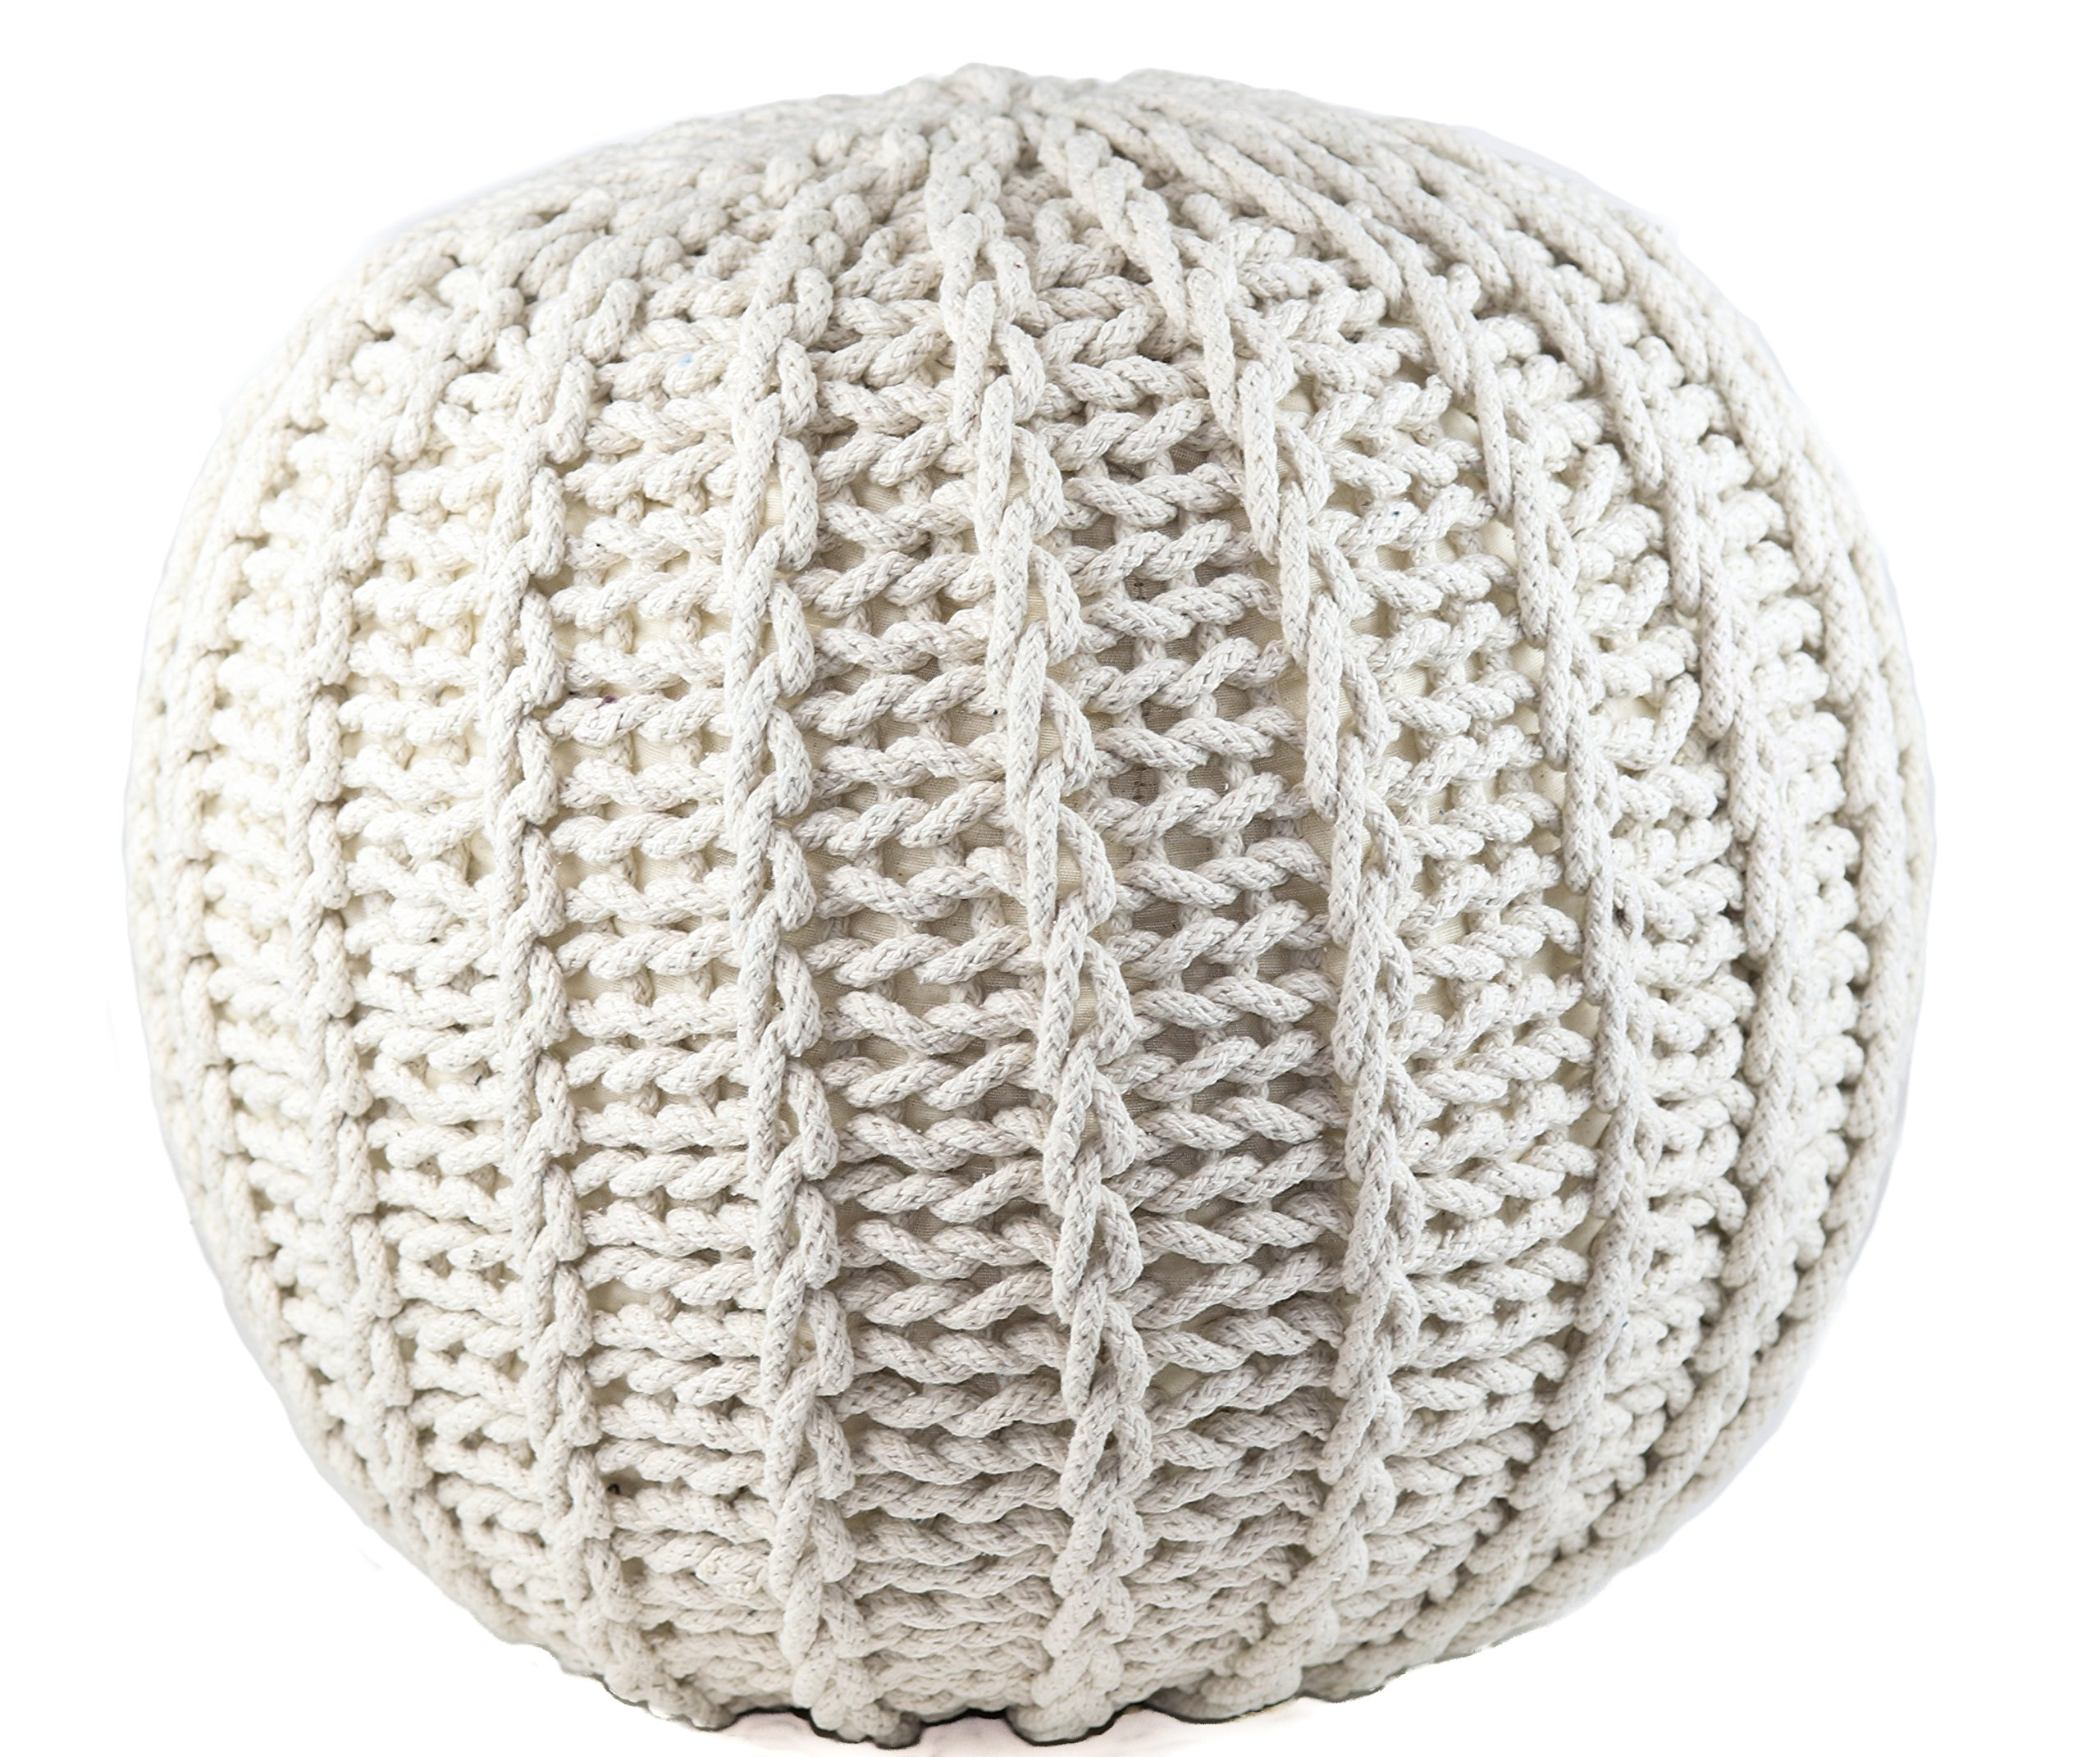 GRAN Cotton Pouf Ottoman Foot Stool & Rest - 18'' Diameter 14'' Height - White - Round Hand Knit Floor Footstool for Living Room, Bedroom and under Desk